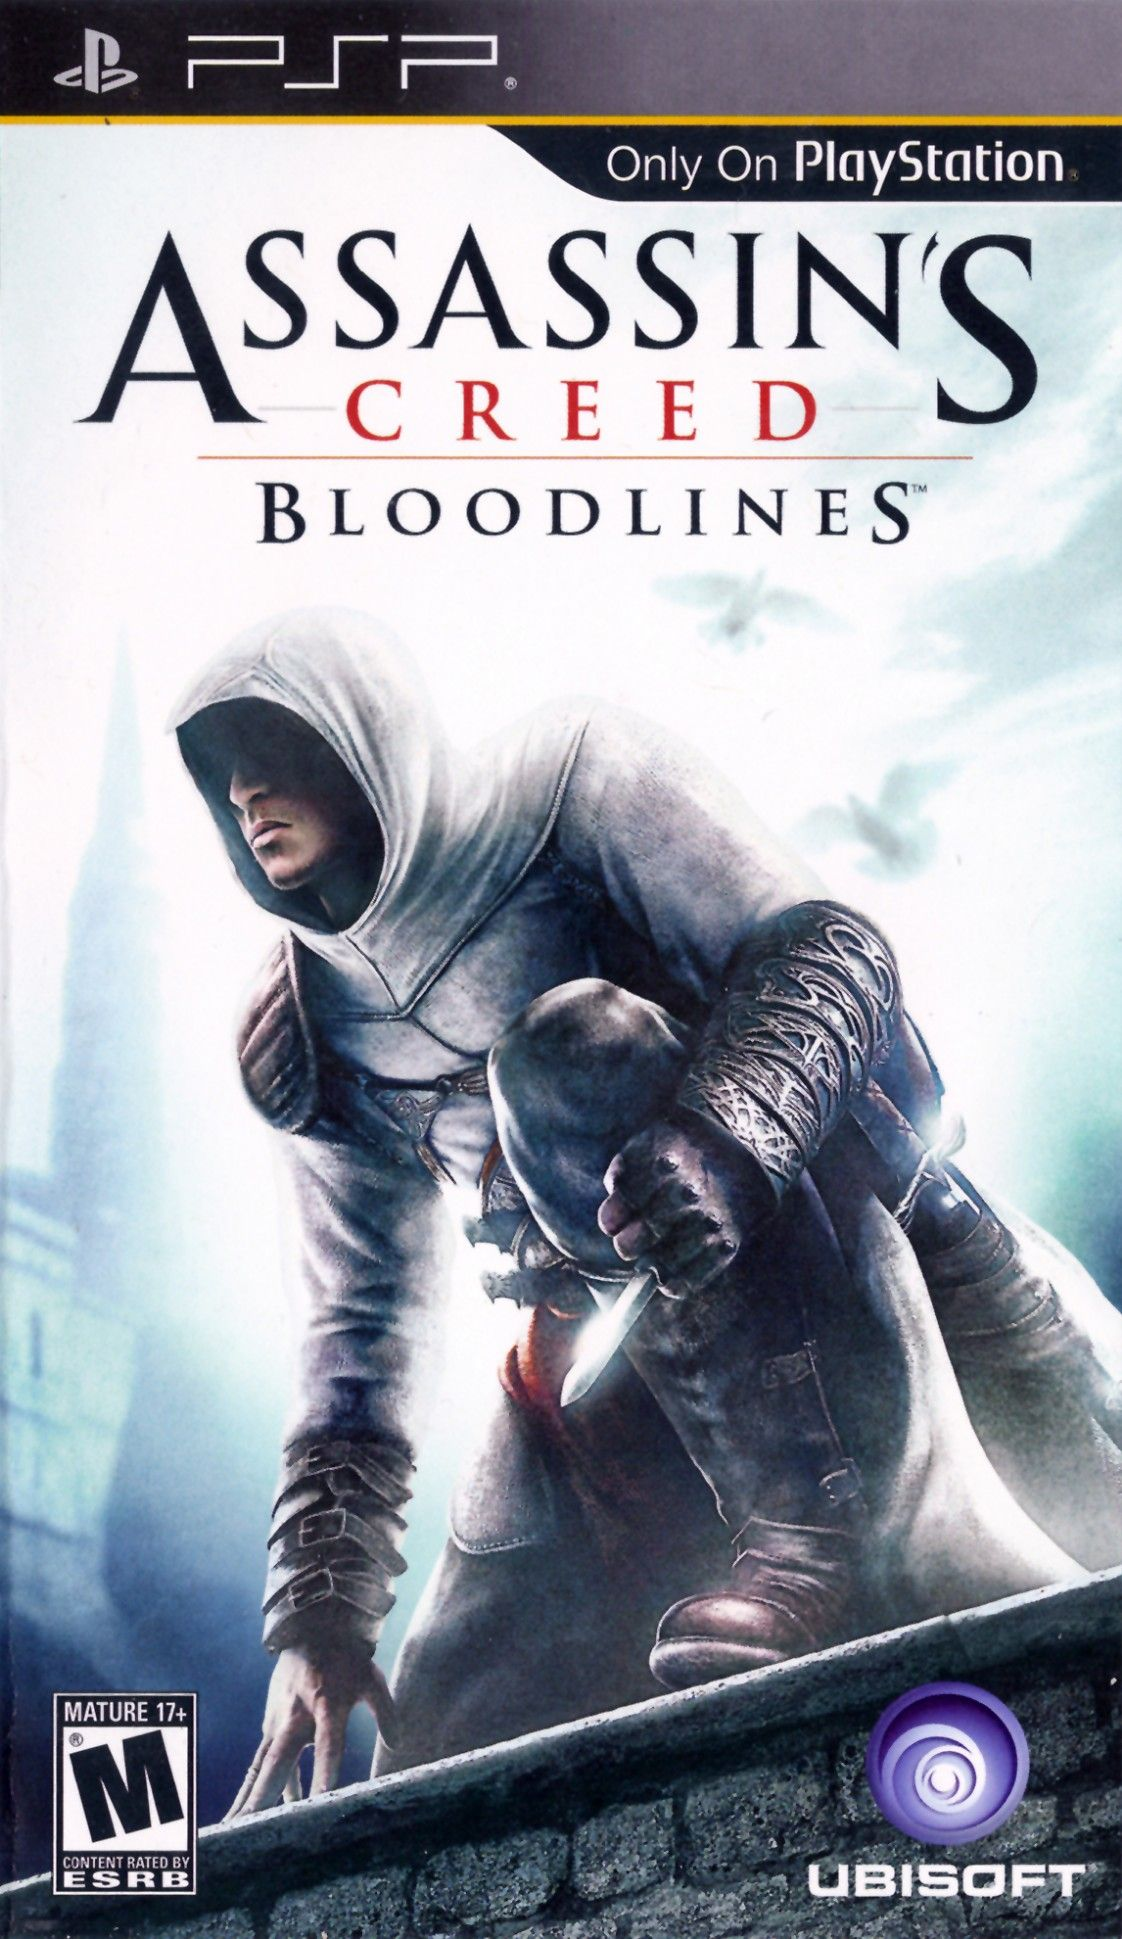 Assassin S Creed Bloodlines Assasins Creed Creed Assassins Creed